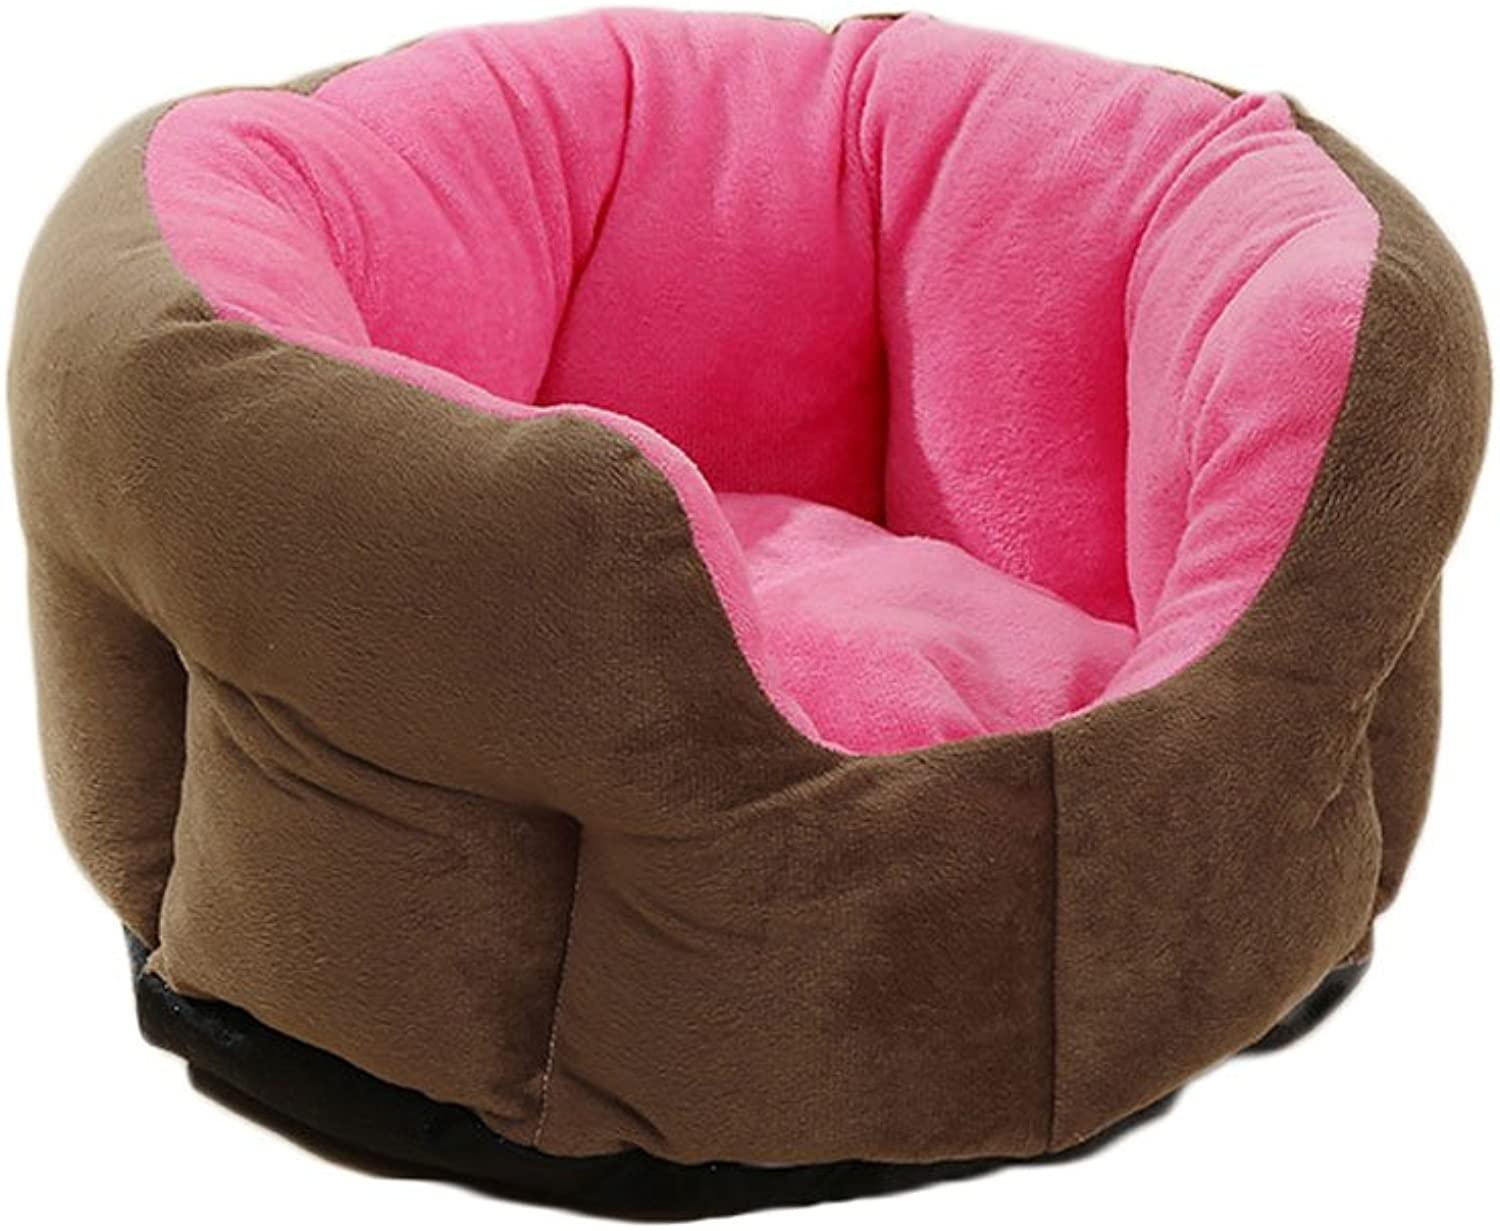 GCHOME dog bed Pet Bed Plush Cotton Waterproof Nonslip Four Seasons Universal Soft Comfortable Cool Breathable Doublesided Available (color   Pink(A), Size   M)